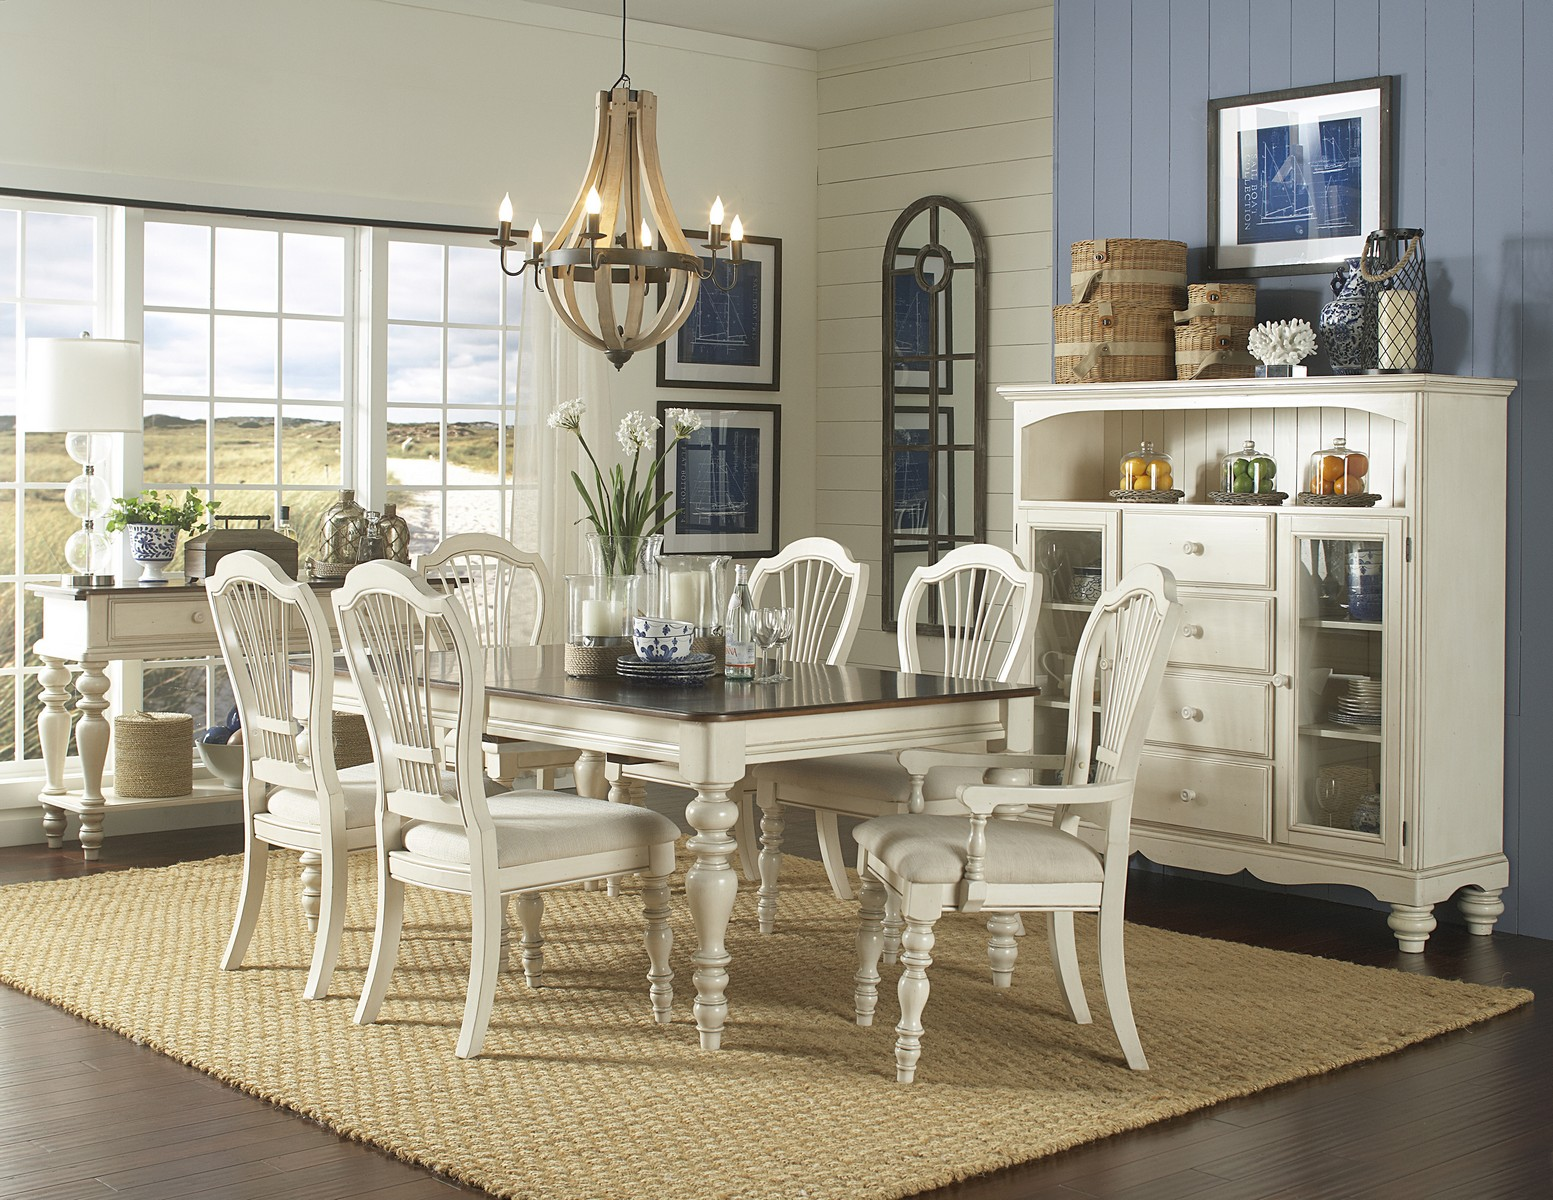 Hillsdale Pine Island 7 PC Dining Set with Wheat Back Chairs - Old White